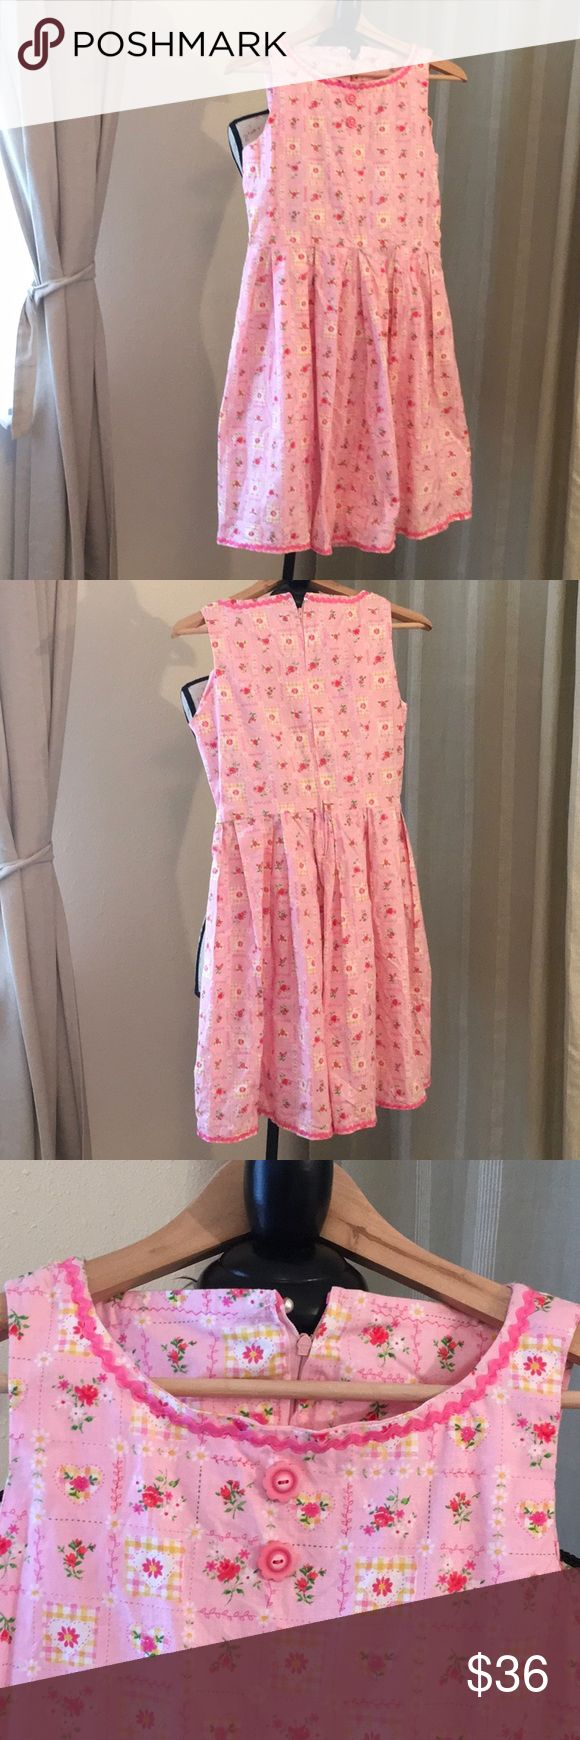 New Handmade Pink Flower Pattern Dress This new never been worn handmade pink flower pattern dress is sleeveless with a rounded neckline and uniform pleats in the skirt. 2 pink buttons in front w/ pink decor. Zipper in back. Bust: approx 34 inches. Waist: approx 39 inches. Shoulder to waist: approx 14.5 inches. Waist to bottom hem: 21 inches. 100% cotton. Machine wash in cold. Air dry. Big Girls XL. Enjoy wearing a one of a kind dress💖 Hand Made Dresses